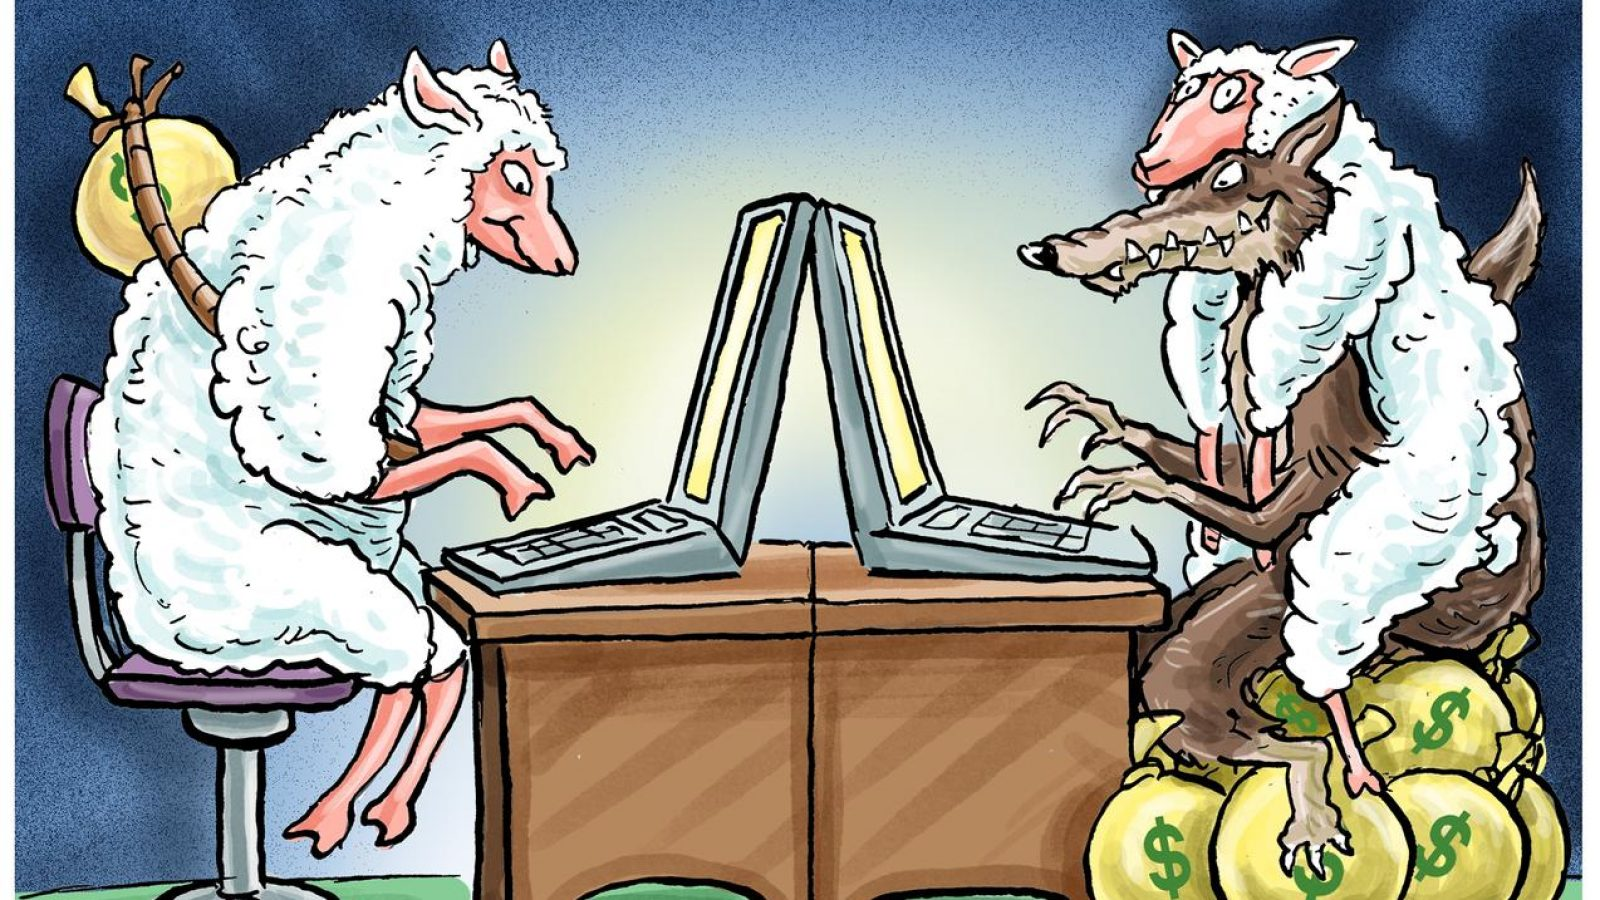 A cartoon drawing shows a sheep with a sack of money on its back typing at a computer, facing a wolf in a sheep's covering, also typing at a computer and sitting on top of a large pile of sacks of money.